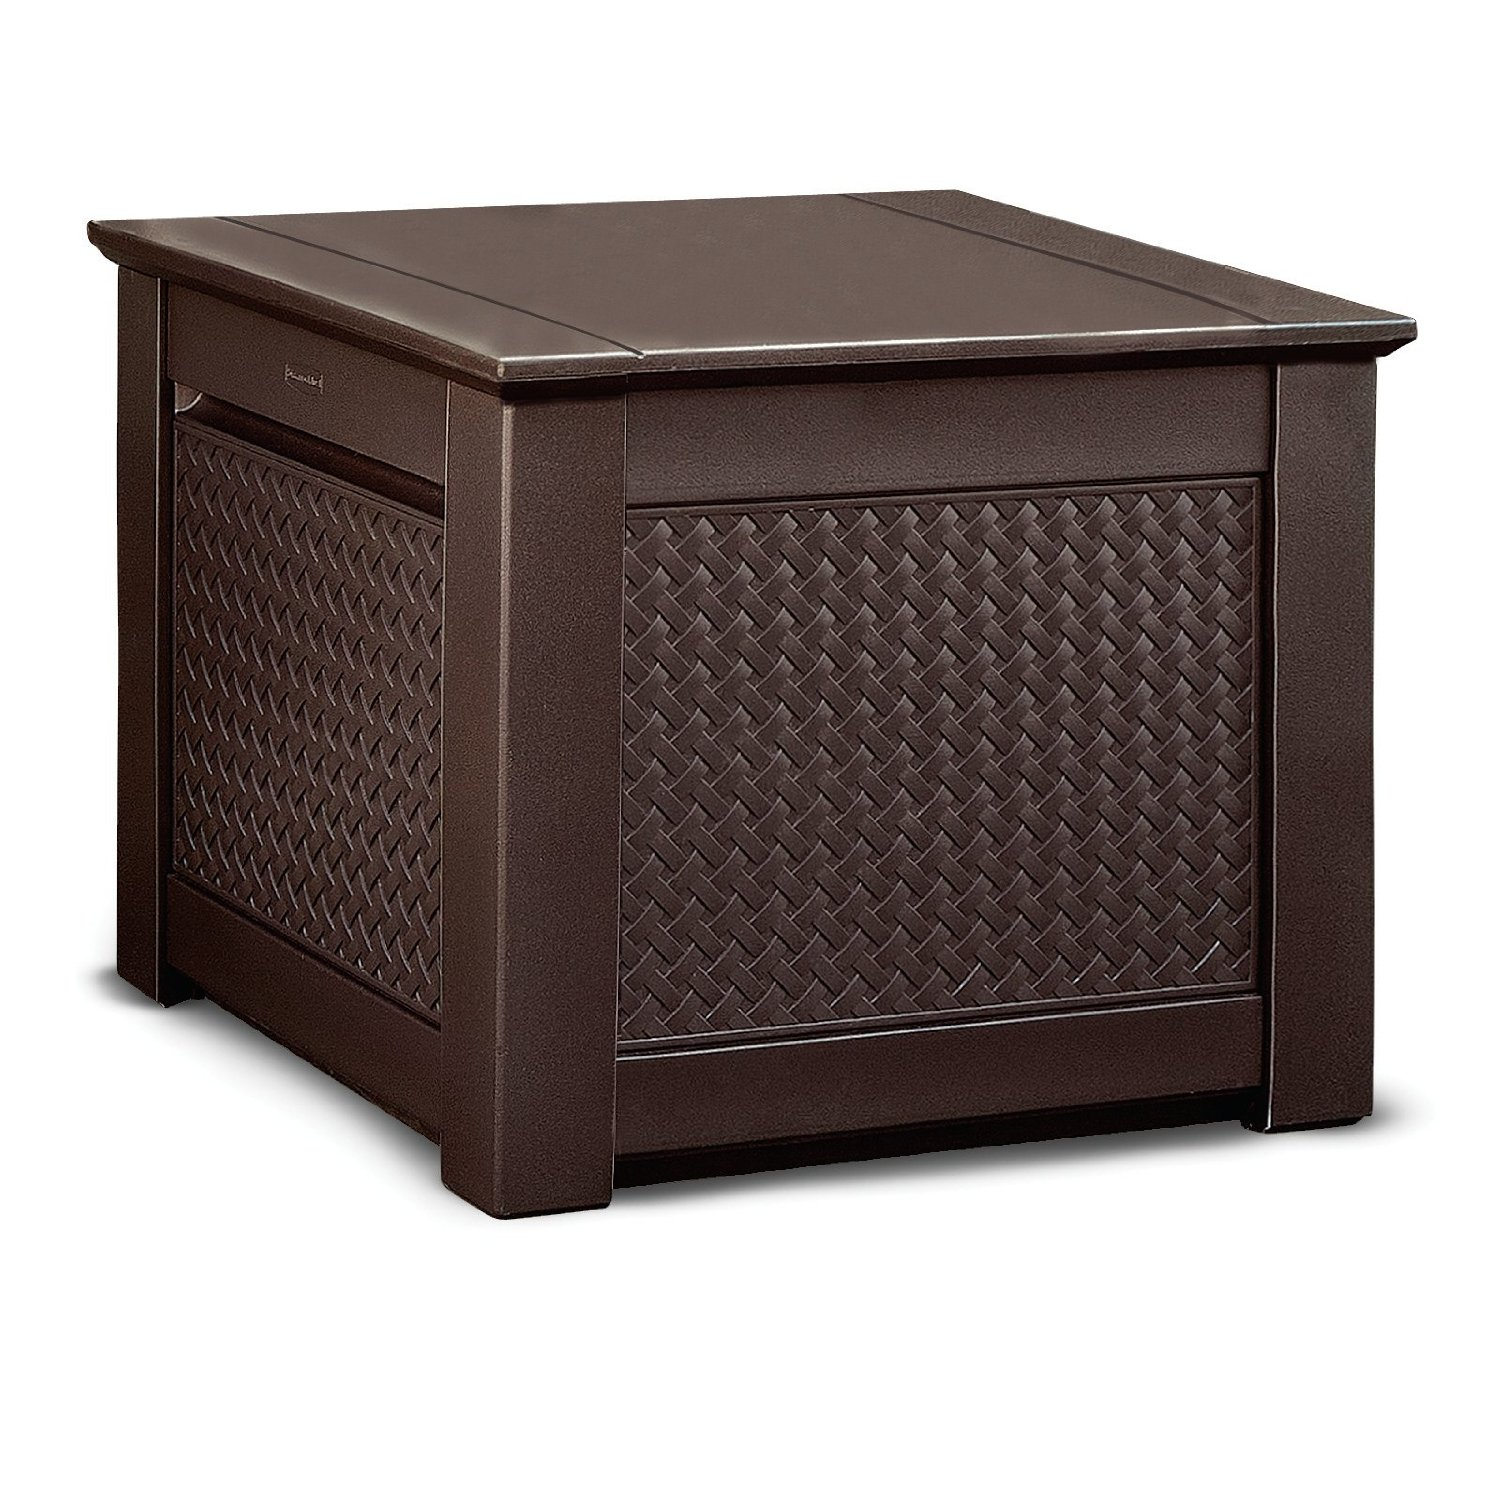 inspiring Suncast Deck Box Ideas in brown with seat for home furniture ideas